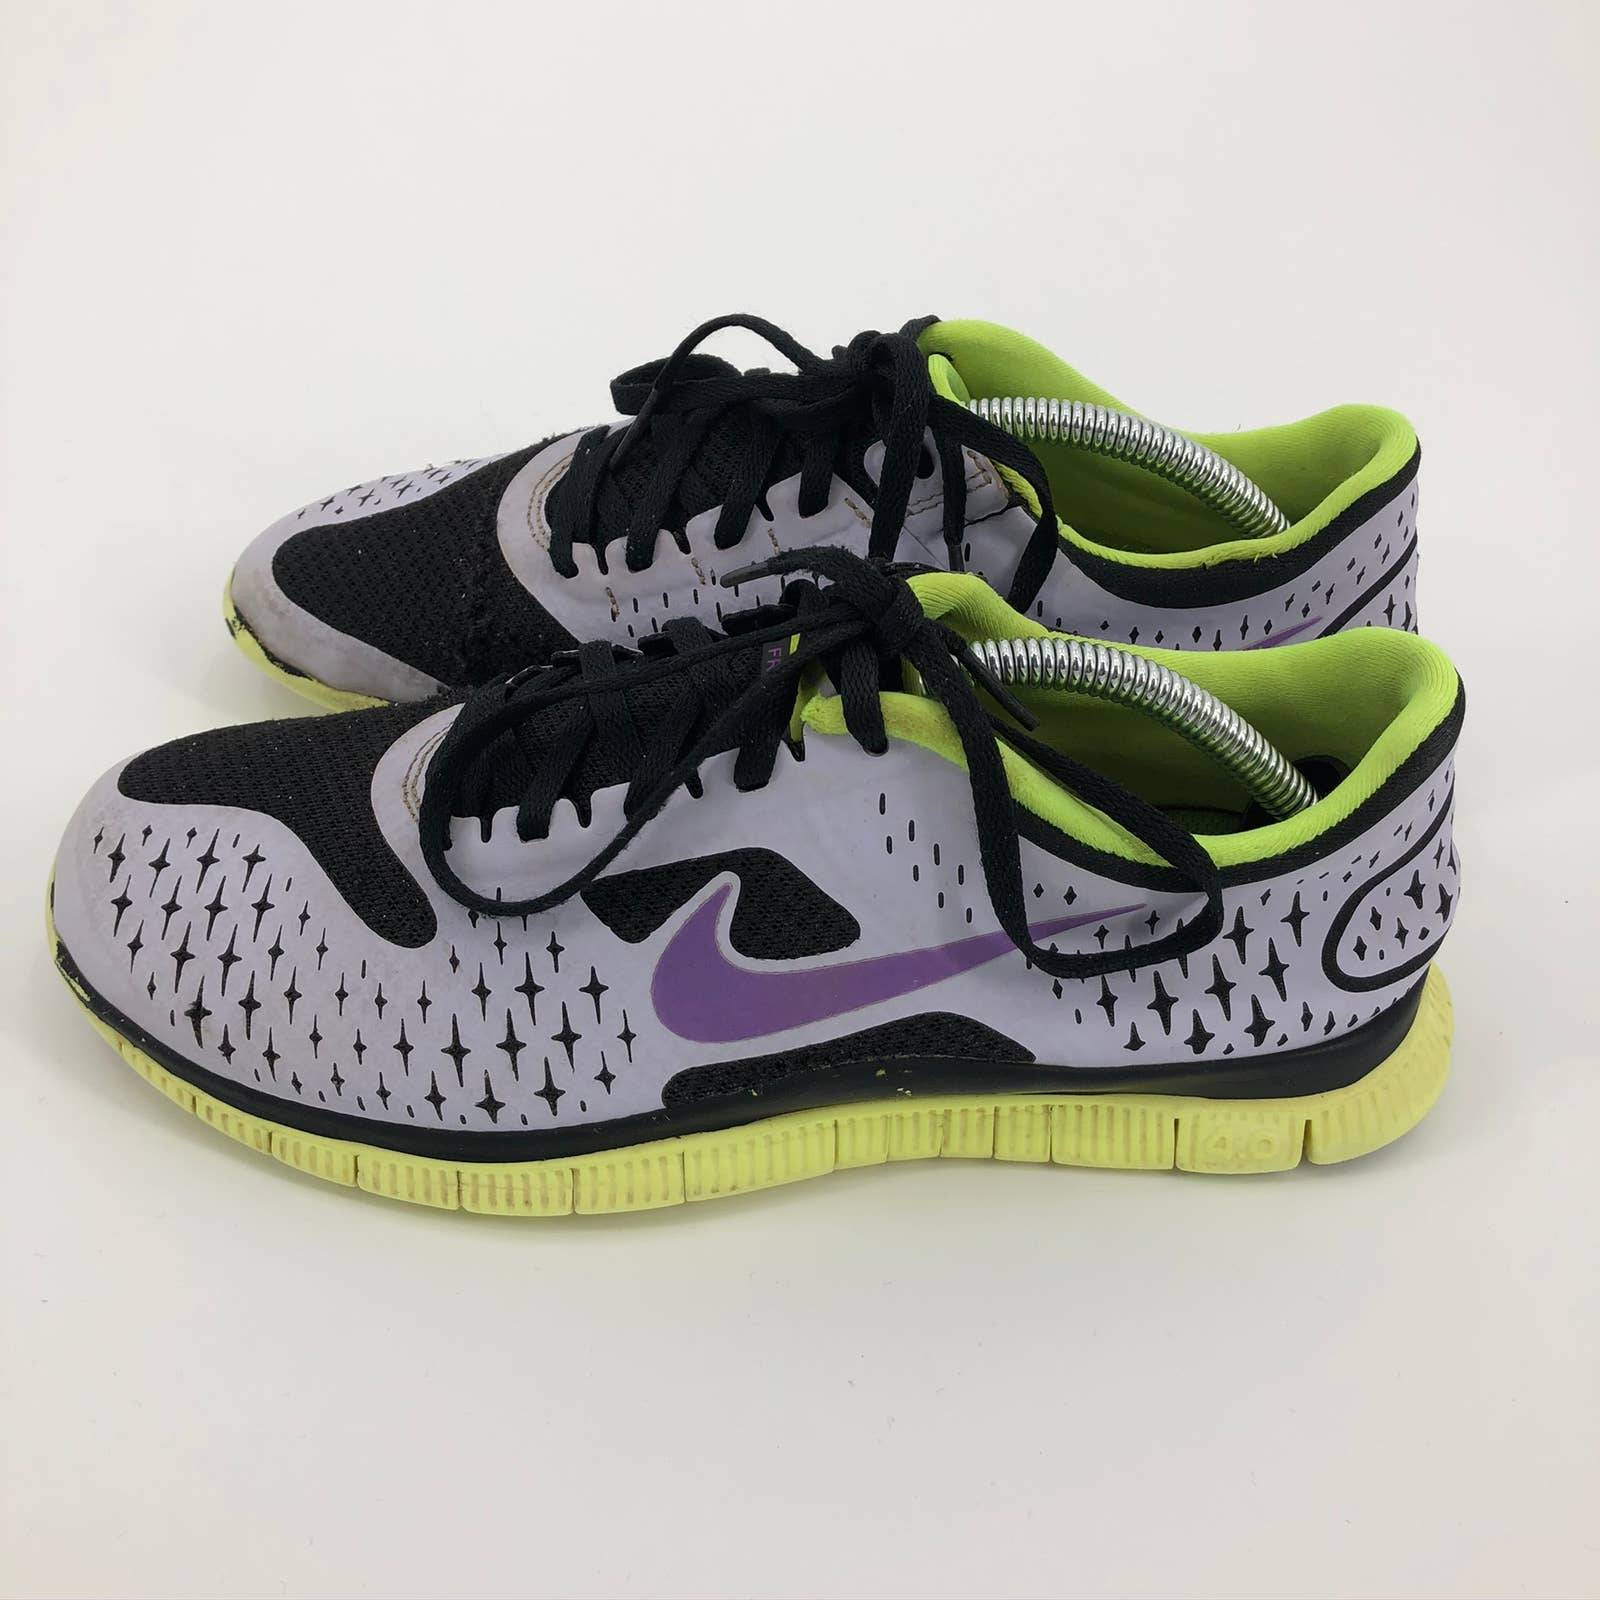 WOMENS NIKE FREE RUNNING SHOES Size 8